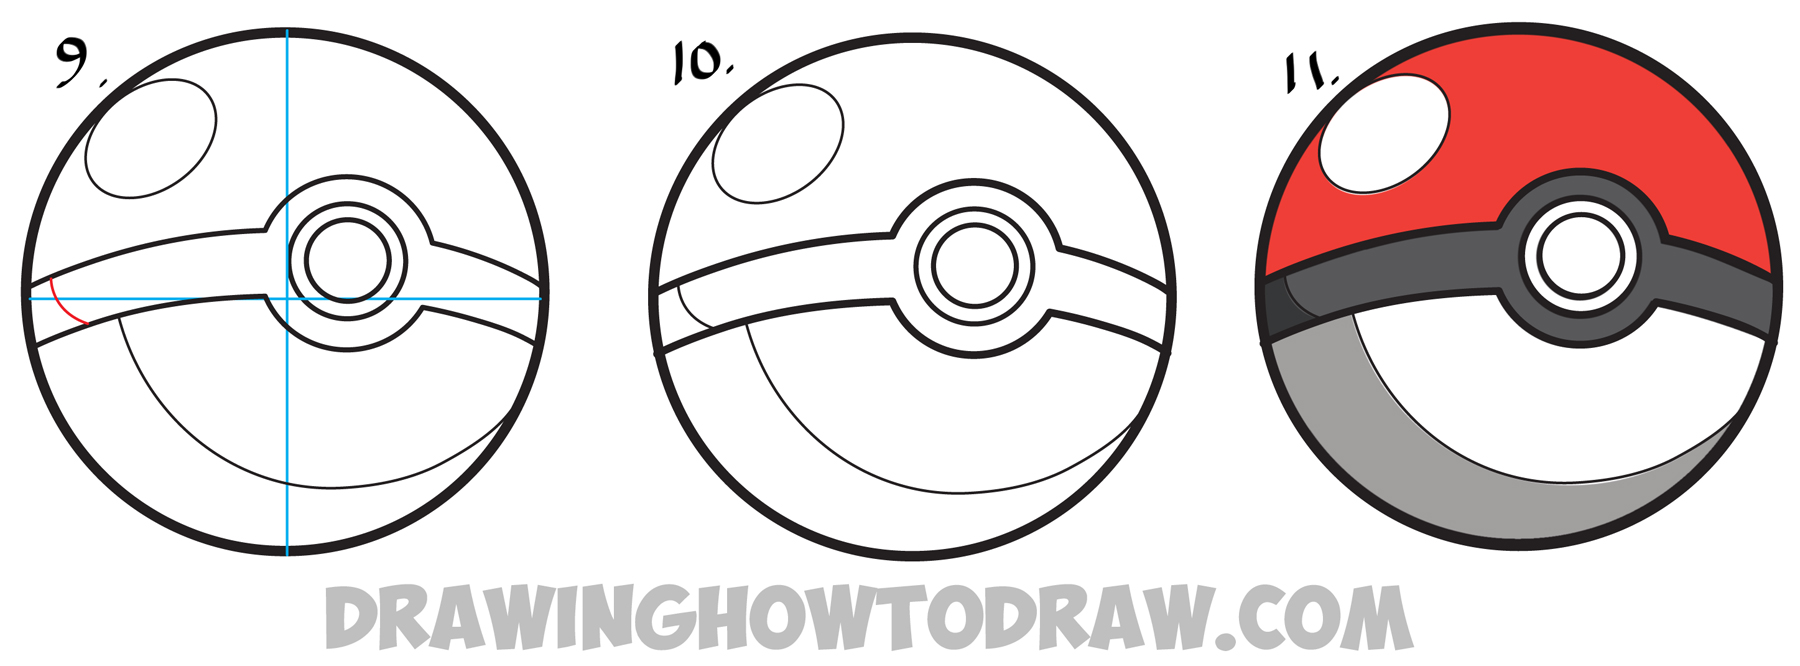 How to draw a pokeball from pokemon easy step by step drawing learn how to draw a pokeball from pokemon simple steps drawing lesson biocorpaavc Choice Image